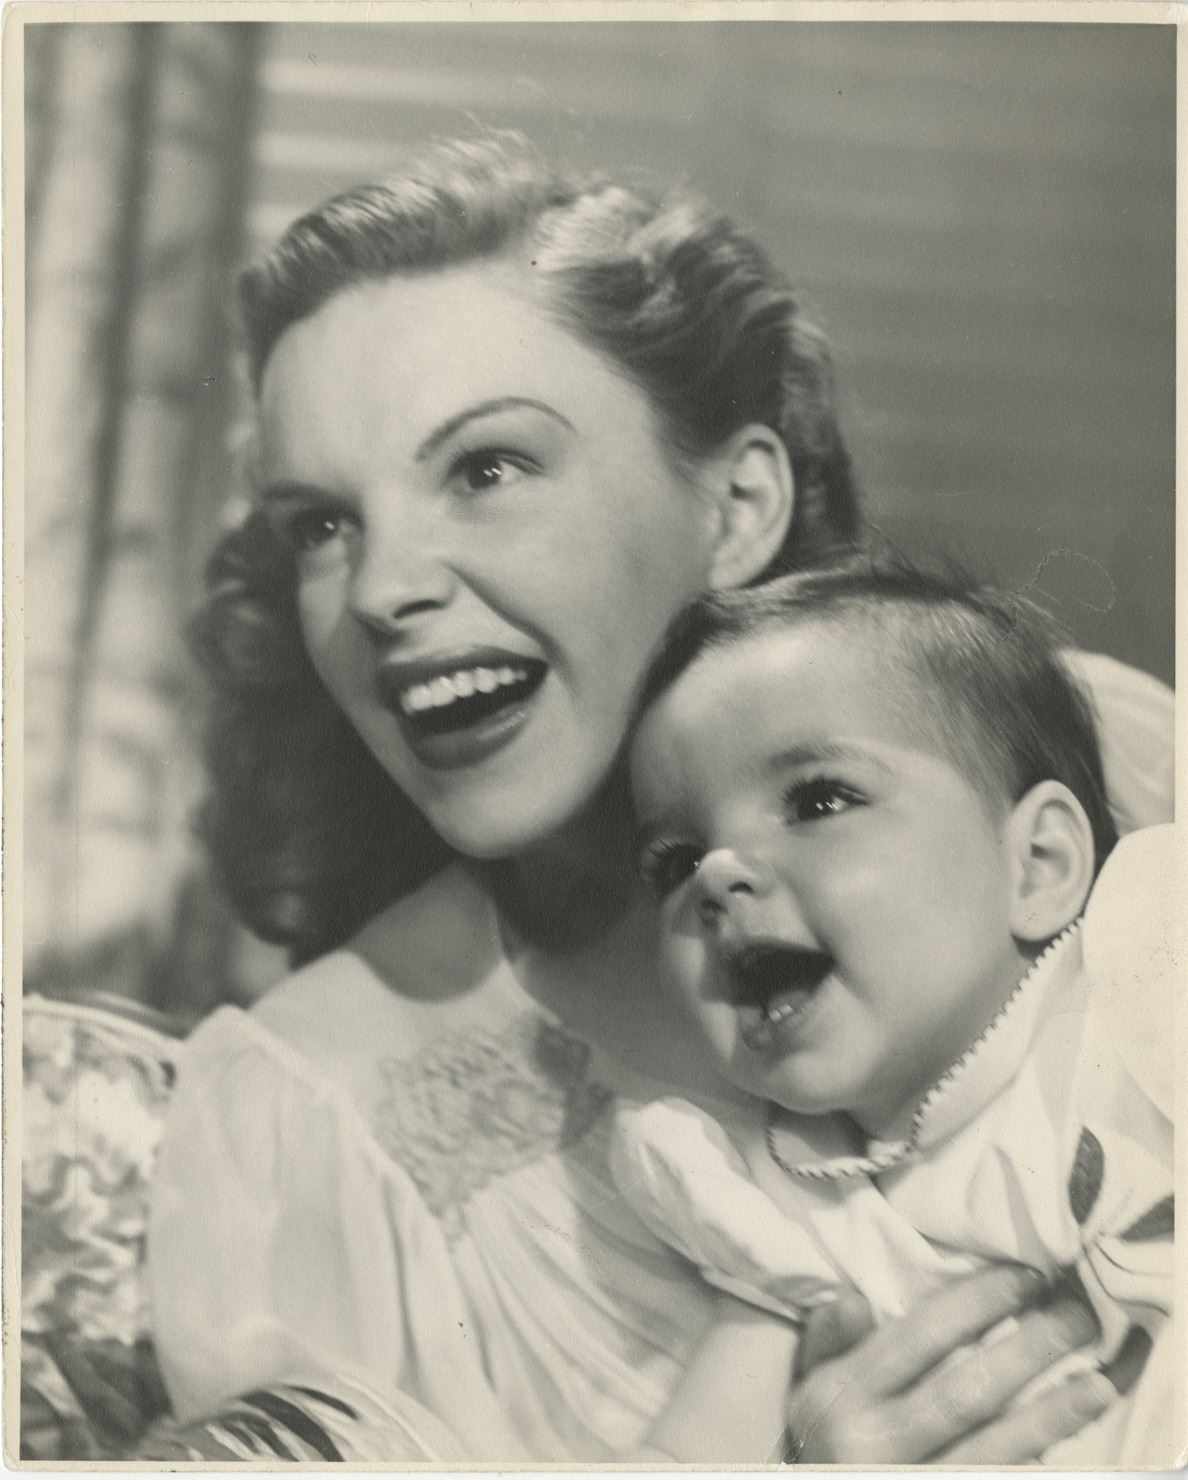 Judy Garland and baby Liza Minnelli photograph by John Engstead